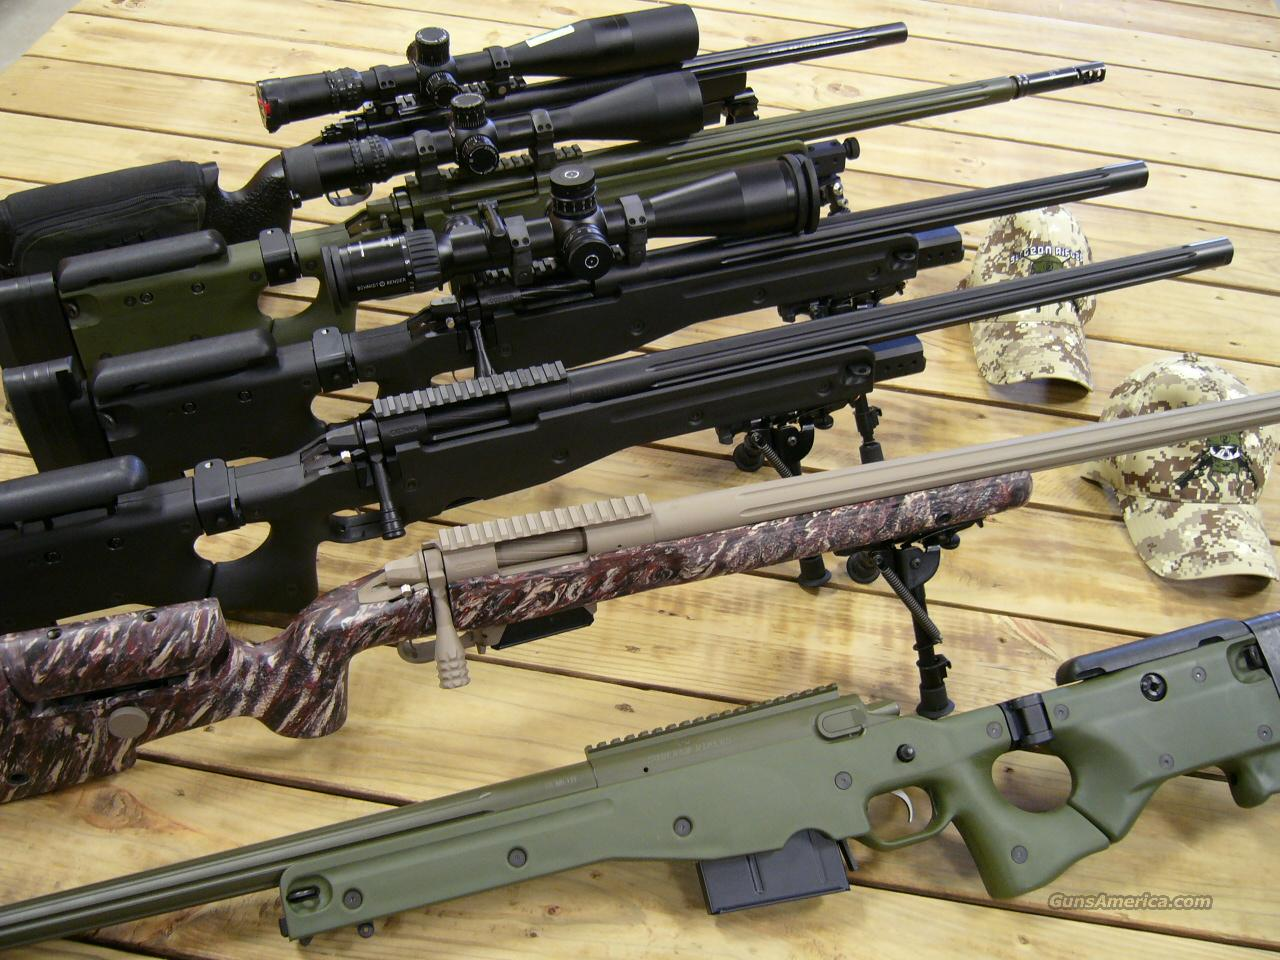 SURGEON RIFLES MCMILLAN STOCK 6.5 CREEDMOOR SNIPER MATCH  Guns > Rifles > Tactical/Sniper Rifles